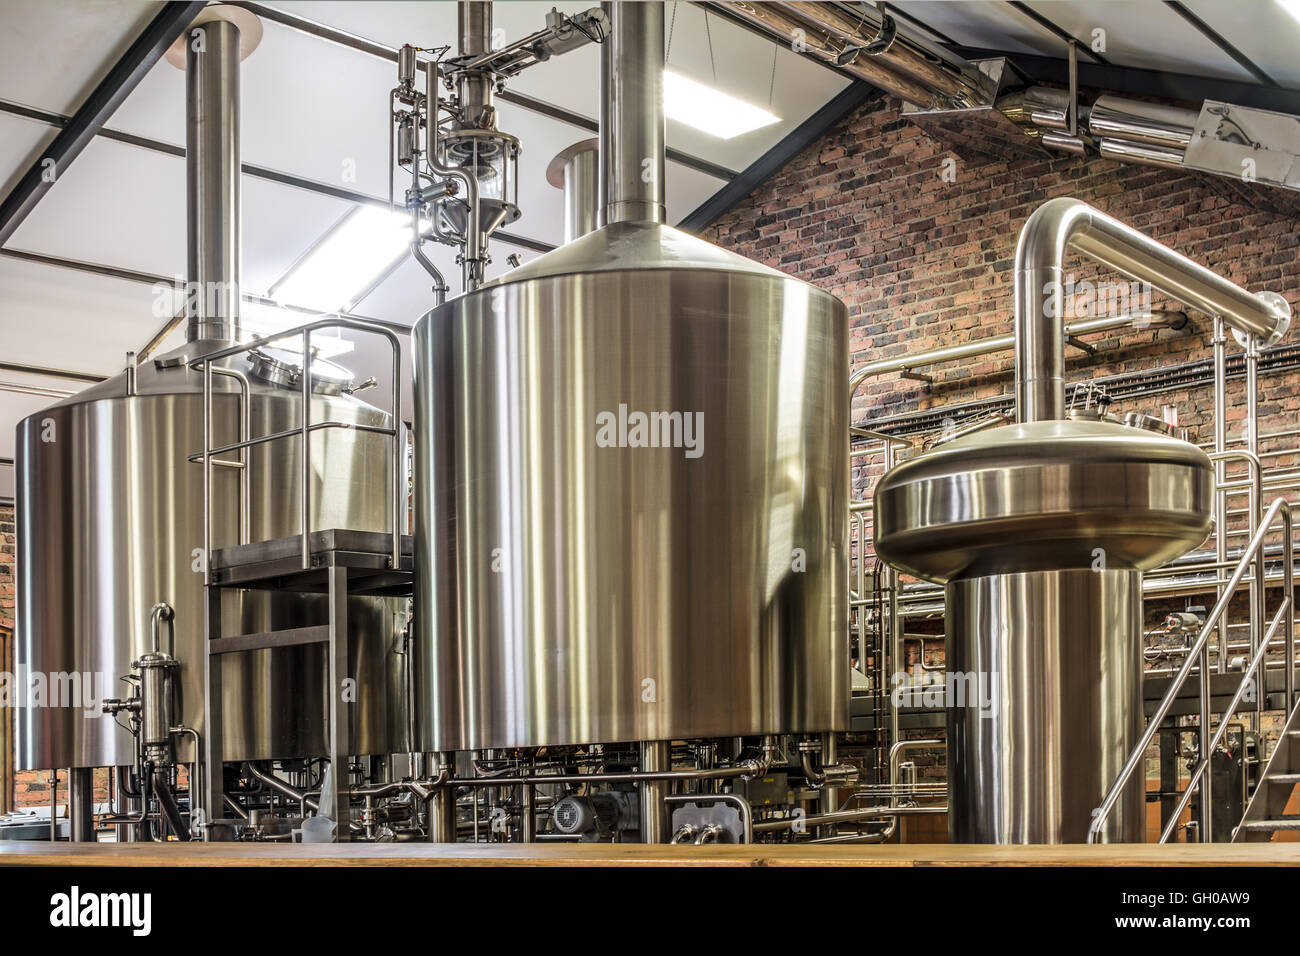 Modern Beer Plant (brewery), With Brewing Kettles, Vessels, Tubs And Pipes  Made Of Stainless Steel.